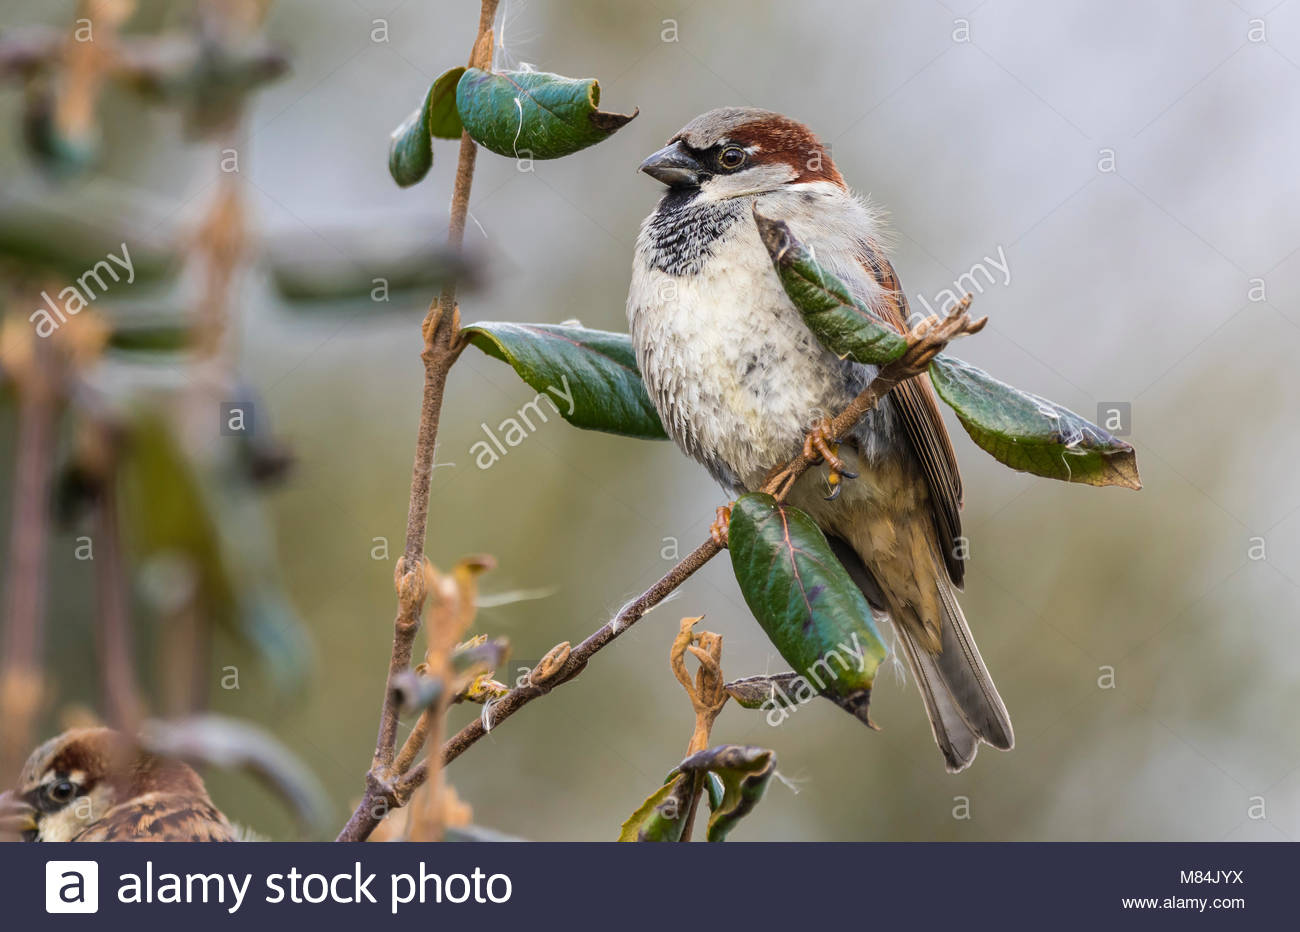 Adult Male House Sparrow (Passer domesticus) perched on a twig in Winter in England, UK. Stock Photo